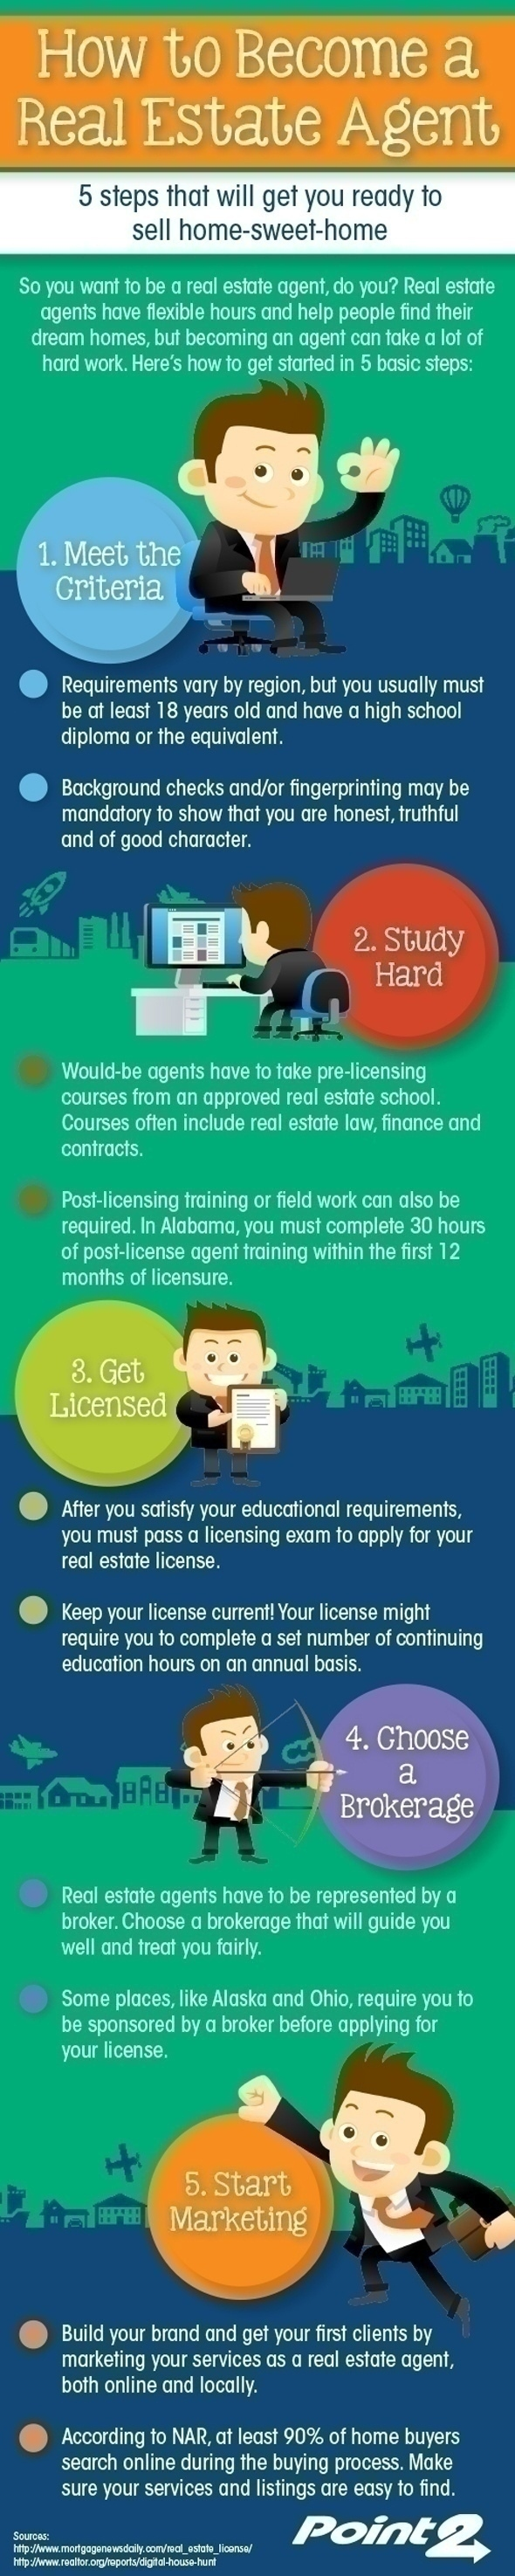 How to become a real estate agent_590w